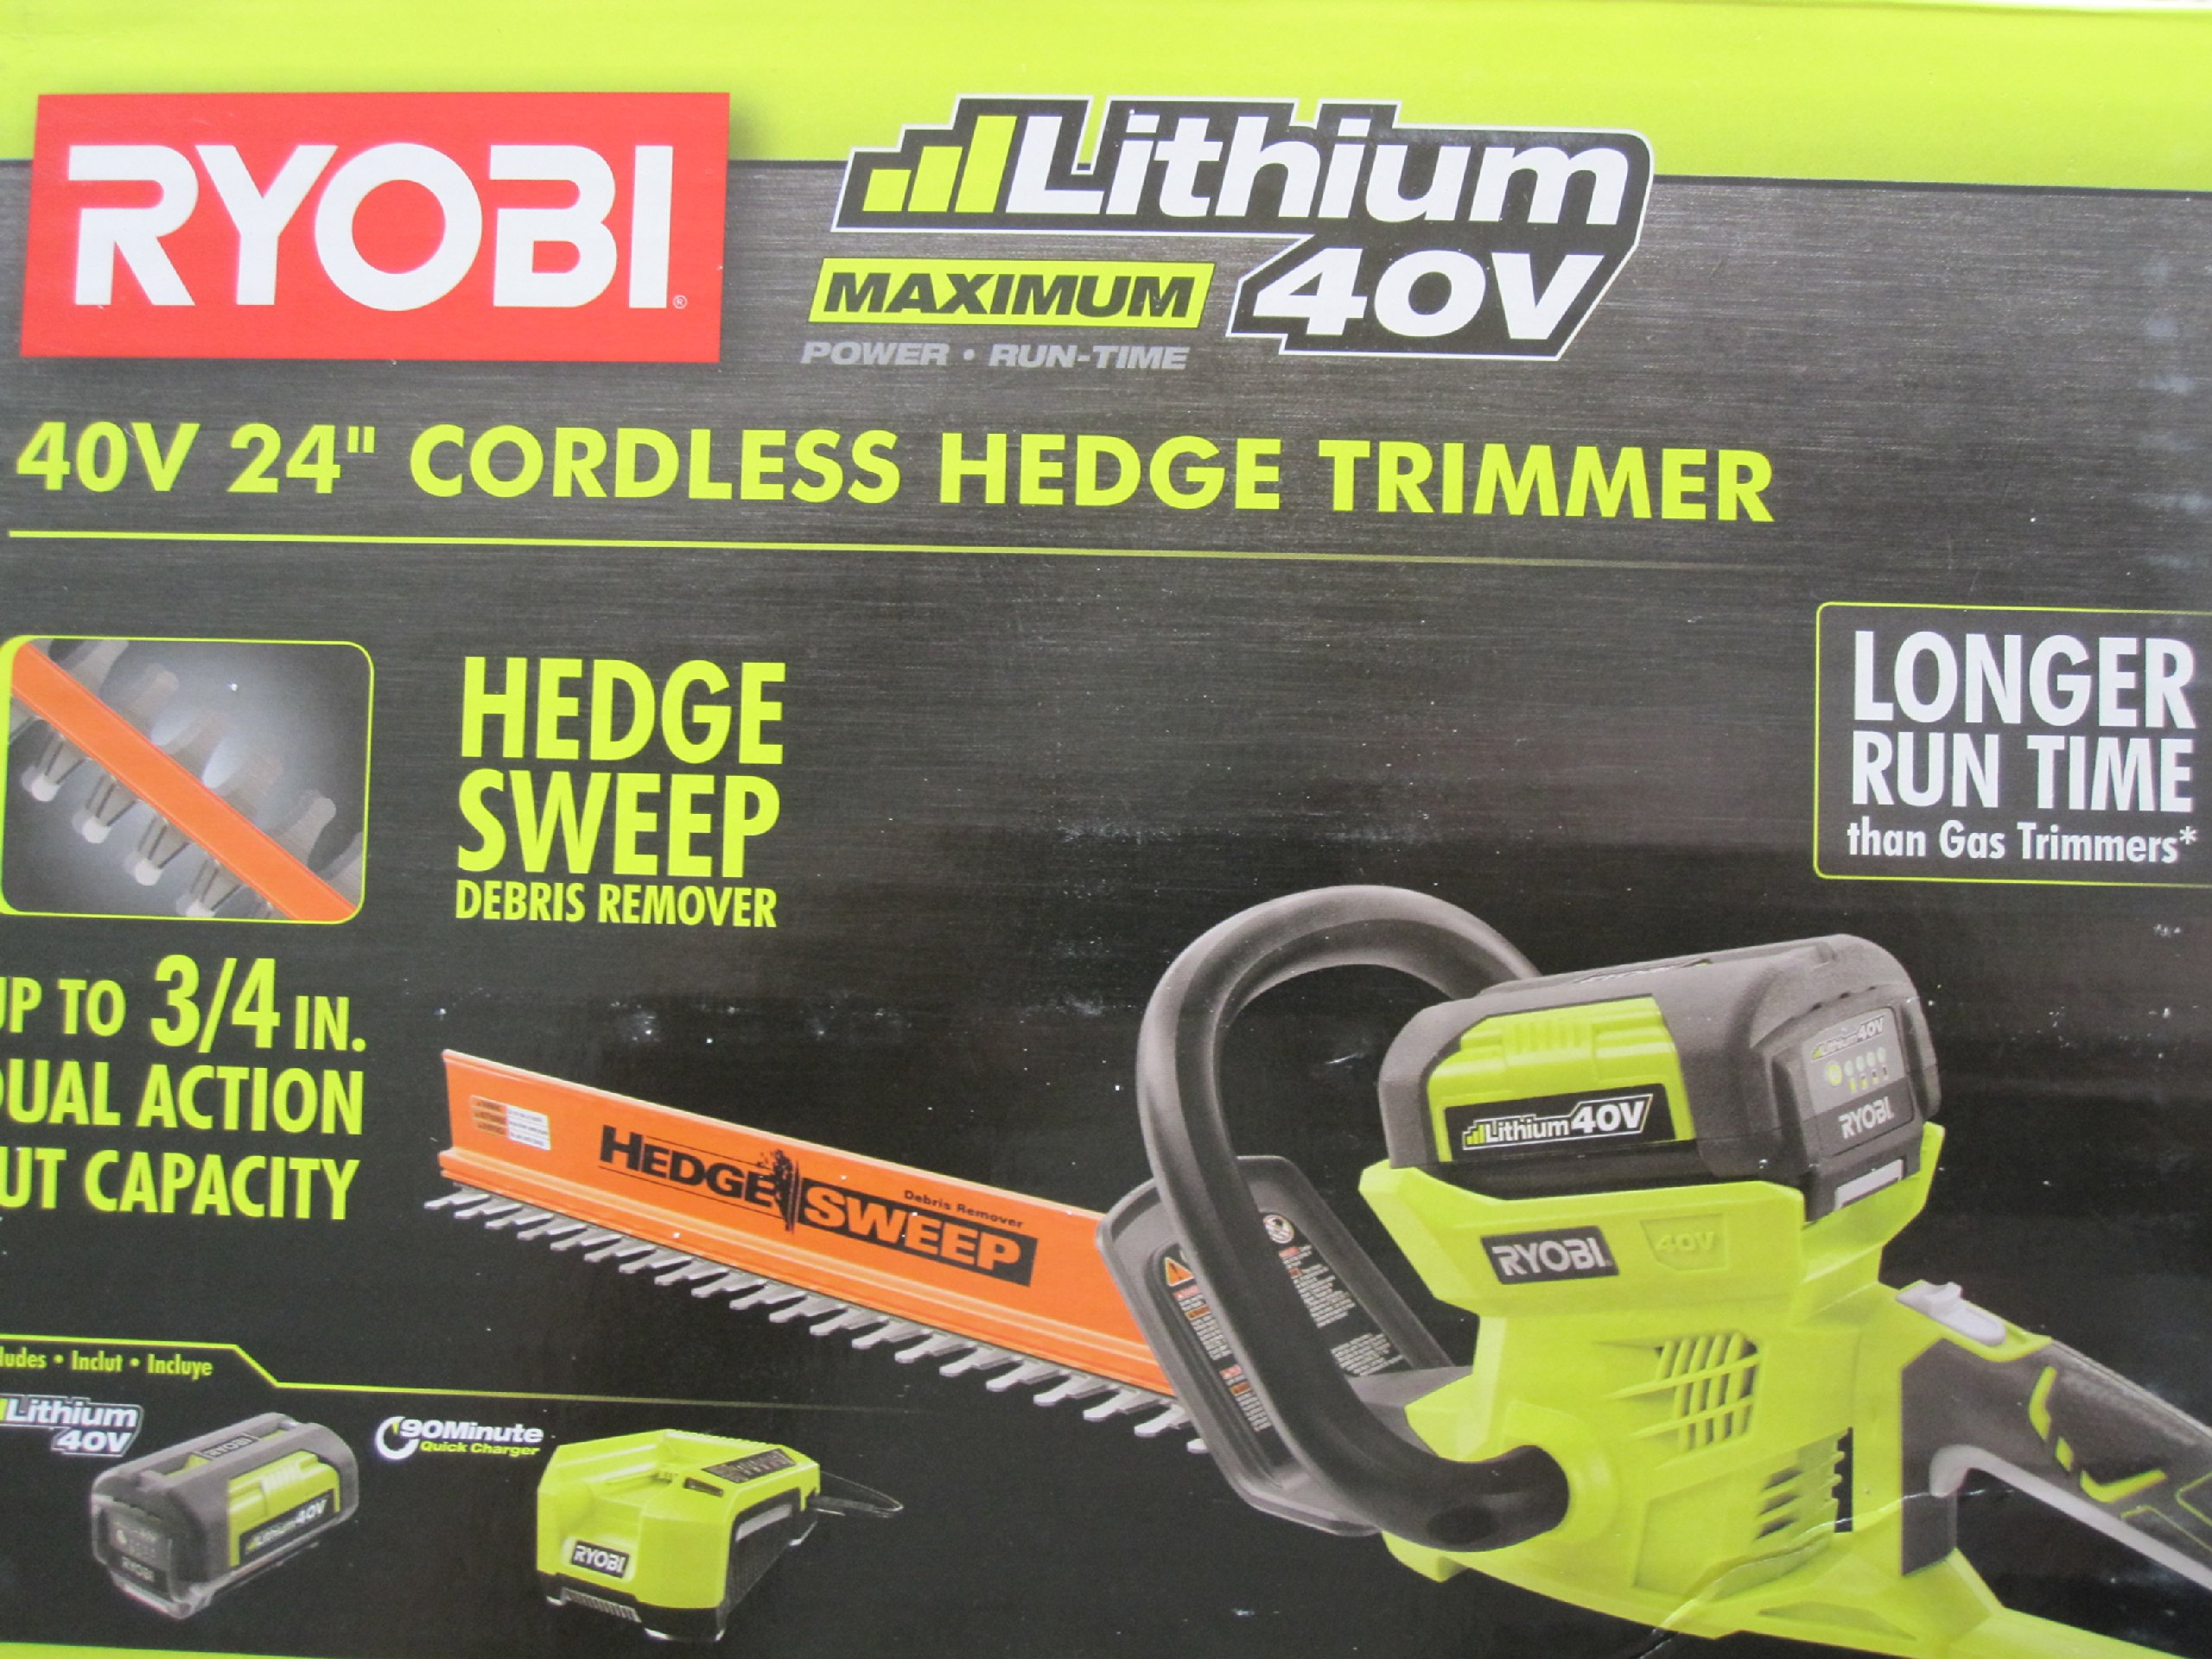 Ryobi 40-Volt Cordless Hedge Trimmer 24'' includes Lithium-Ion Battery plus Charger